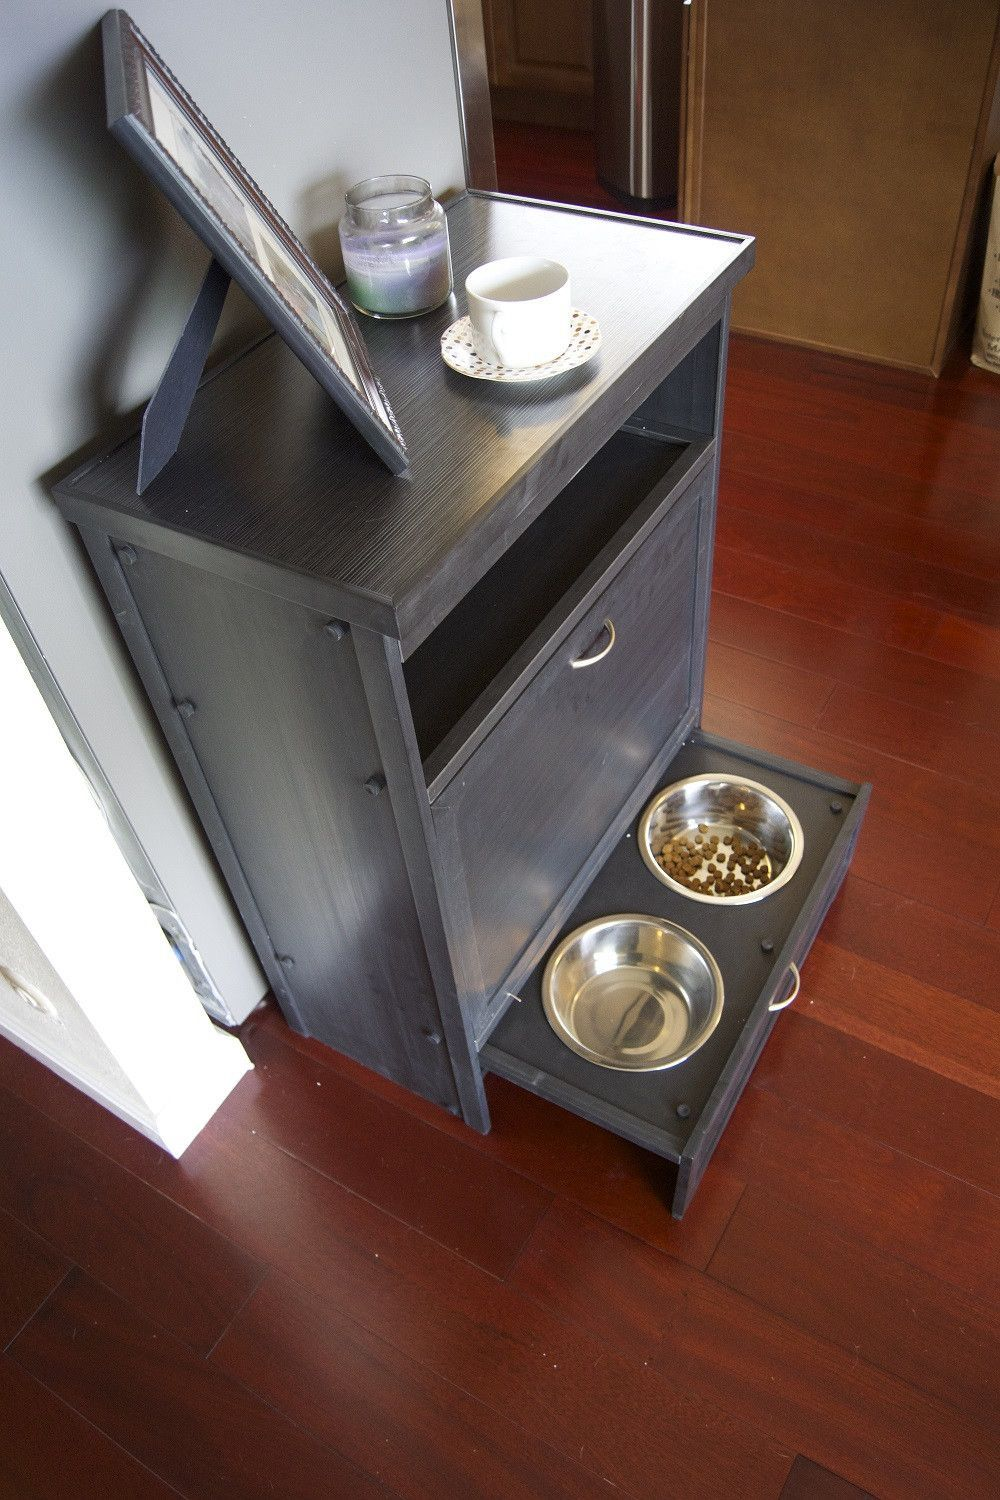 Darla S Pet Pantry Feeder And Storage Furniture I Wonder If Ike Could Mske This